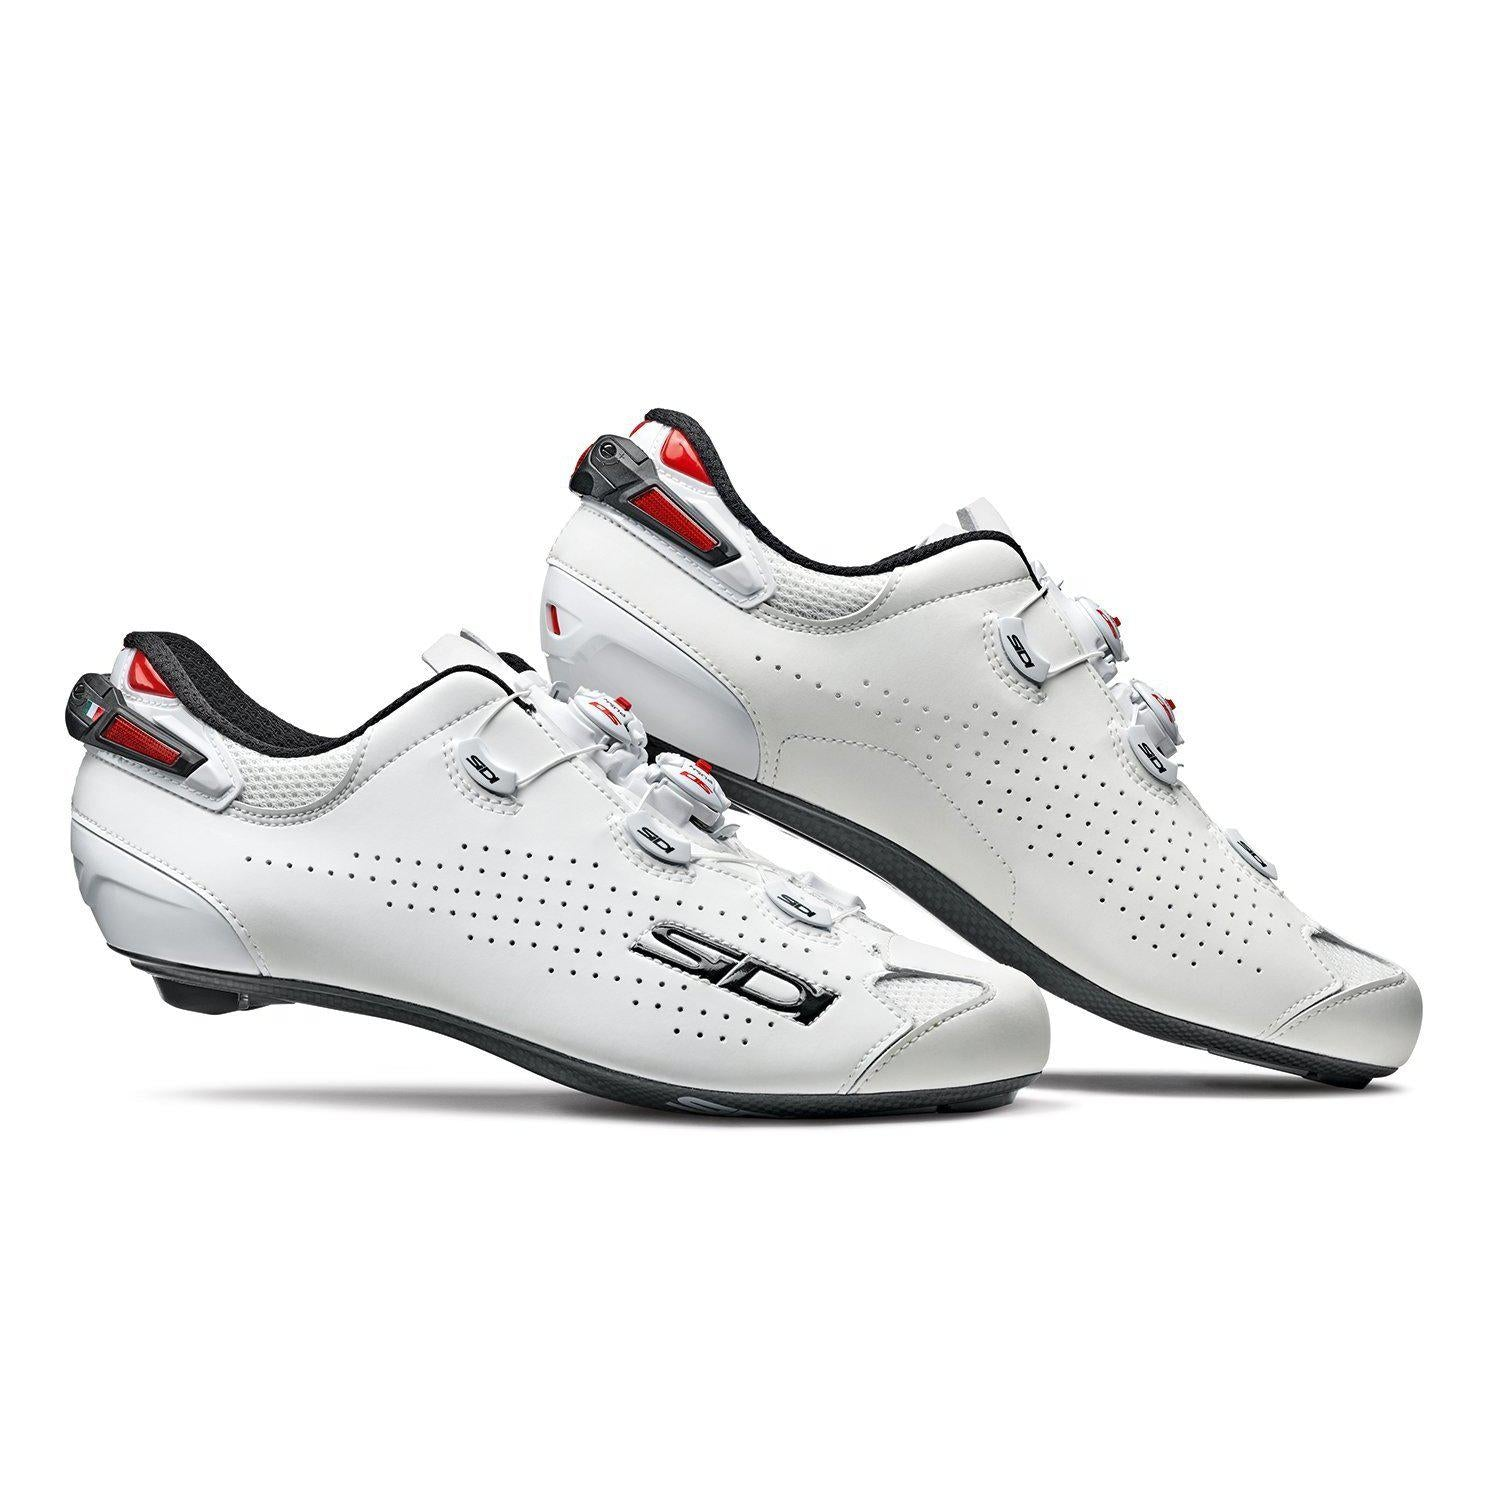 Sidi-Sidi Shot 2 Road Shoes-White/White-38-SISHOT2BIBI38-saddleback-elite-performance-cycling